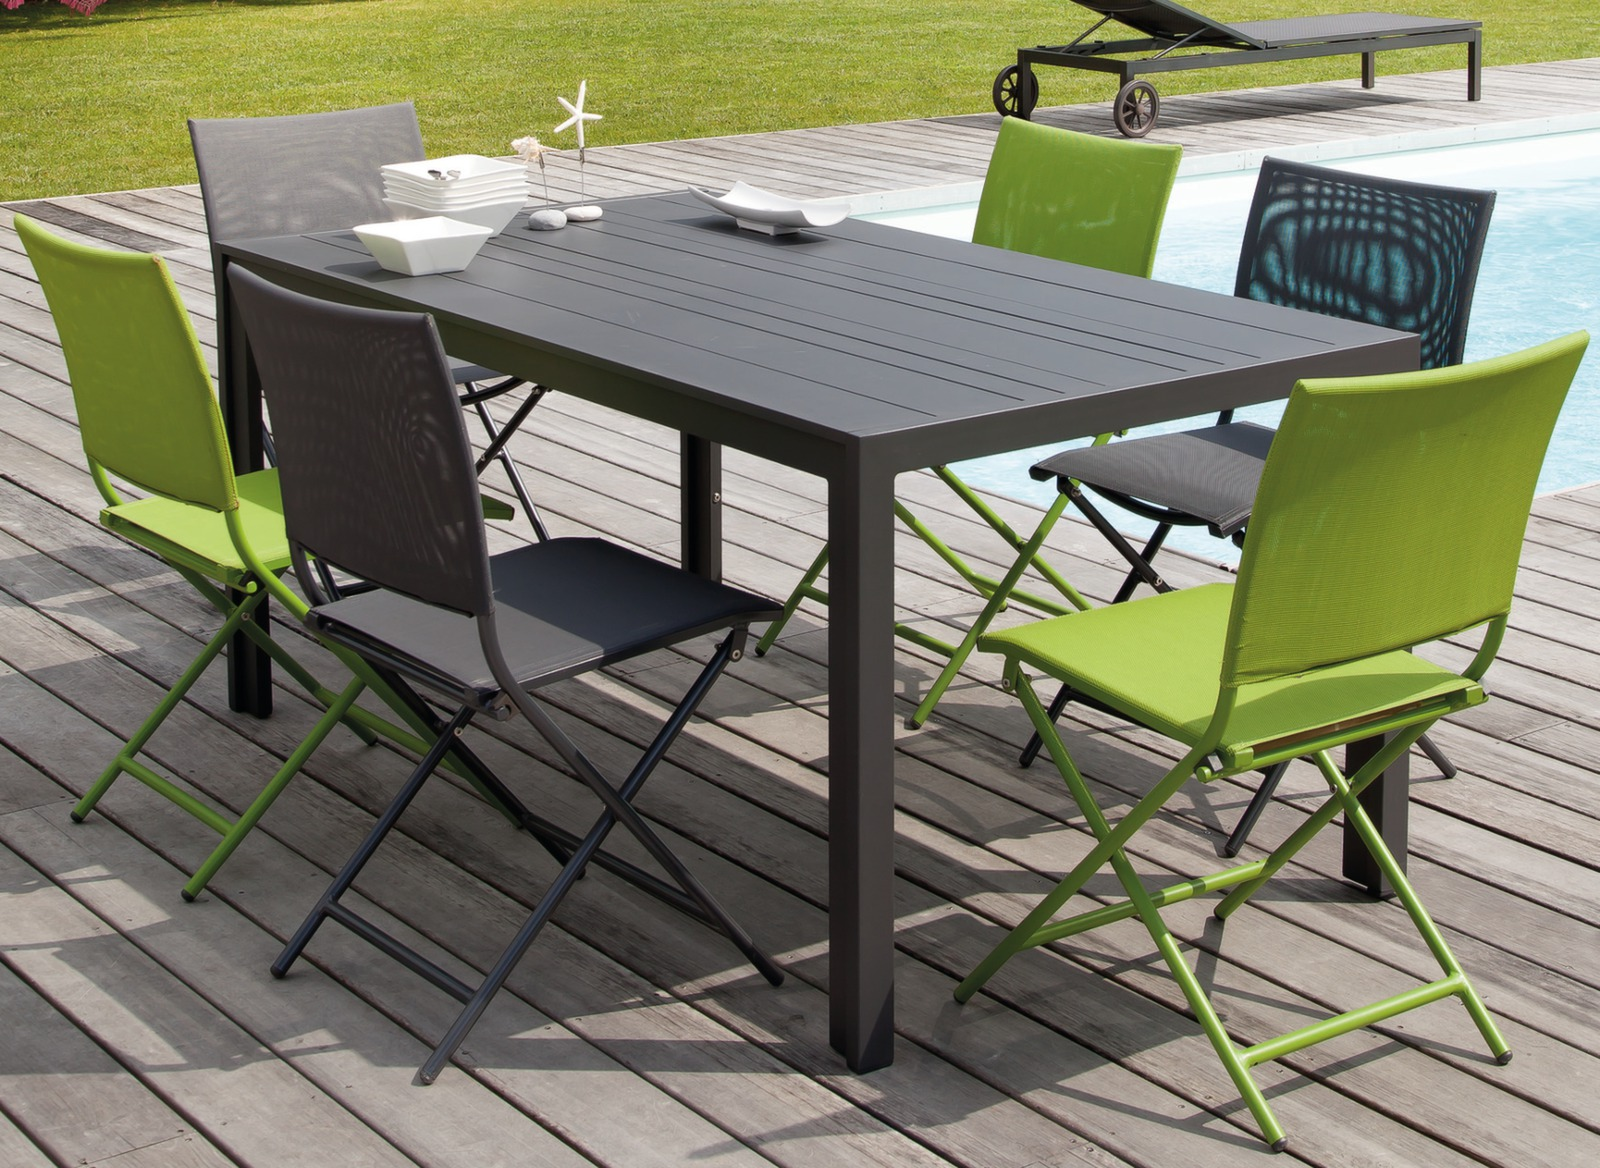 Salon De Jardin Table Pliante Table De Jardin Pliante Table Jardin Bois Pliante Table Pliante